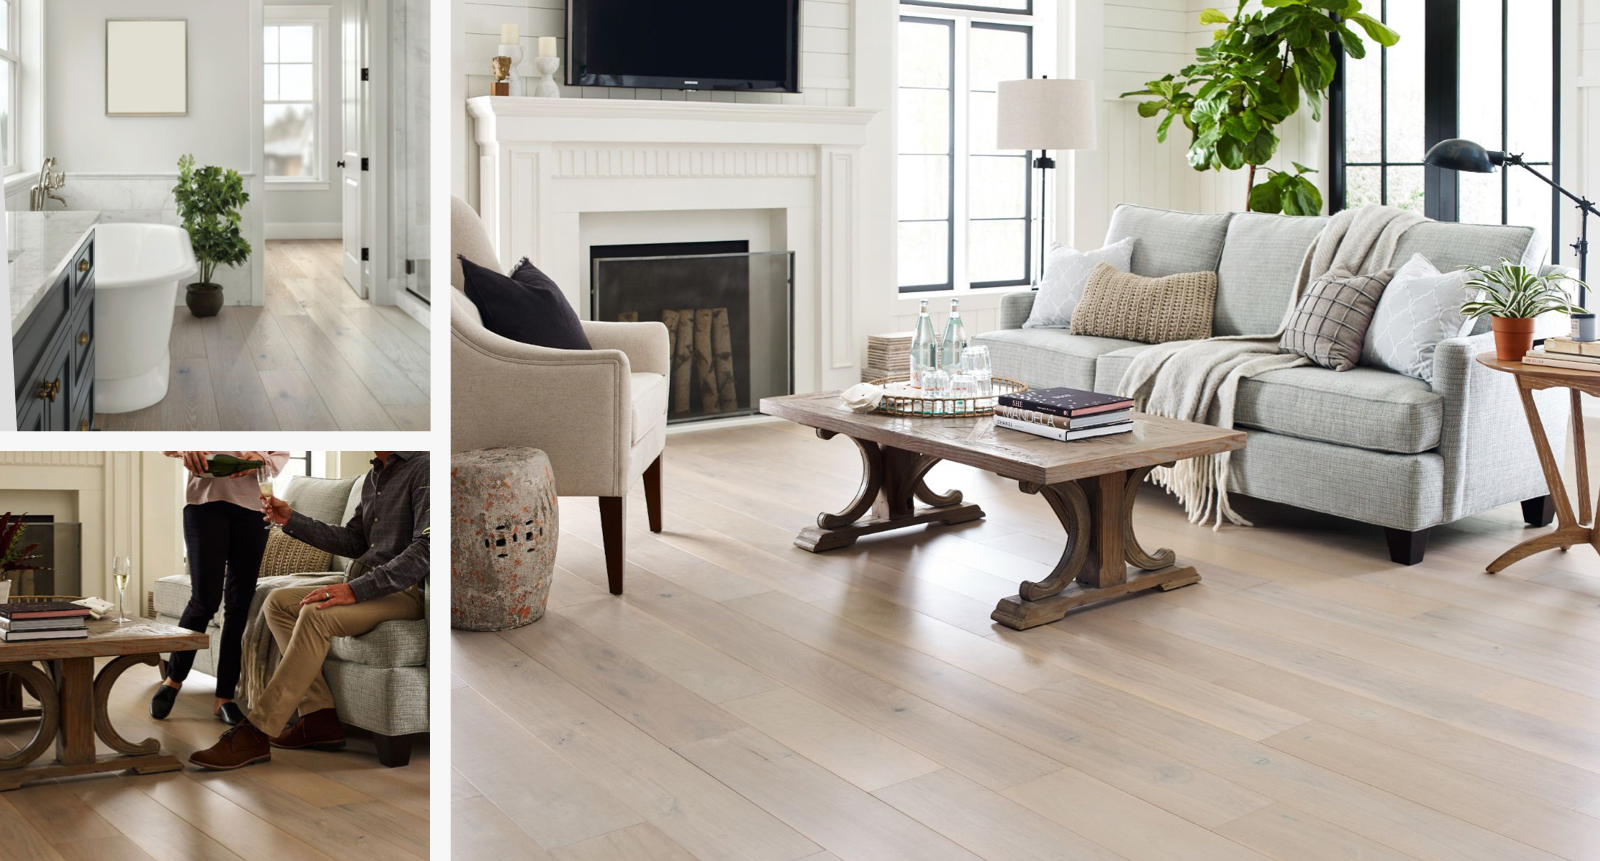 Floorte waterproof hardwood flooring for your home | A & S Carpet Collection